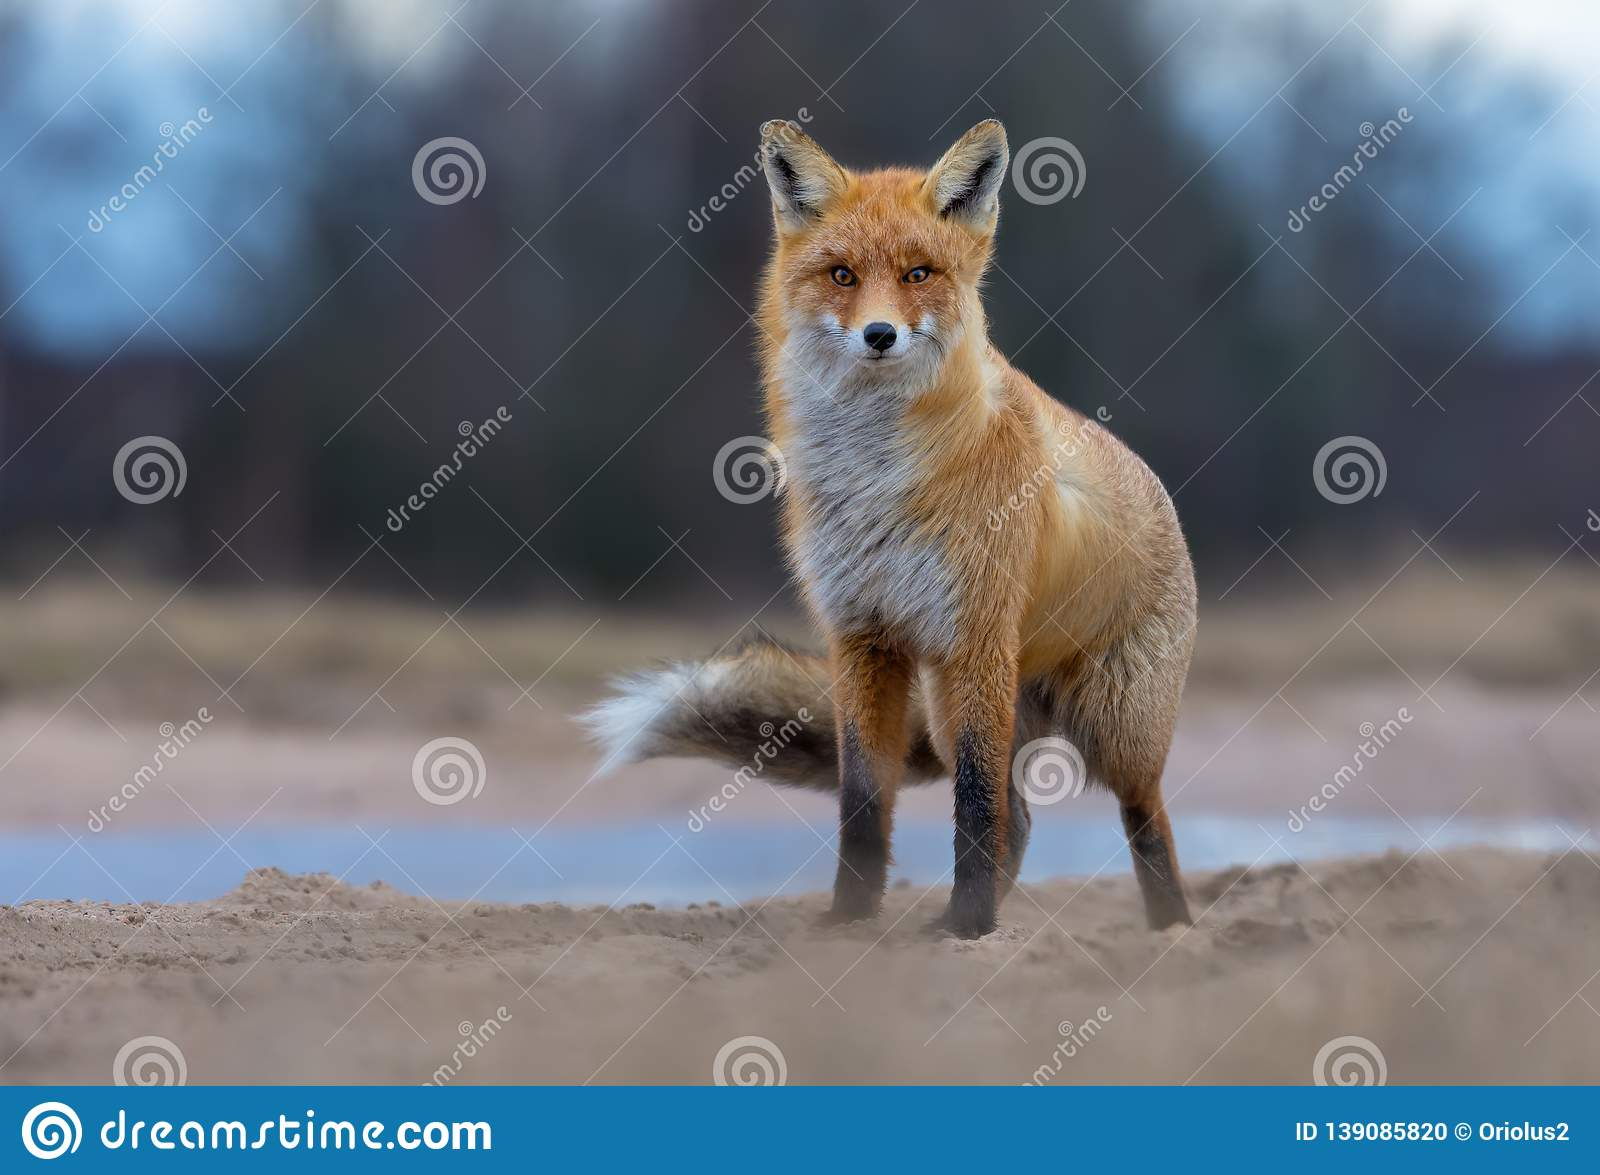 Puffy Red Fox posing on sand road anf looks at the viewer in turbulent and rough weather